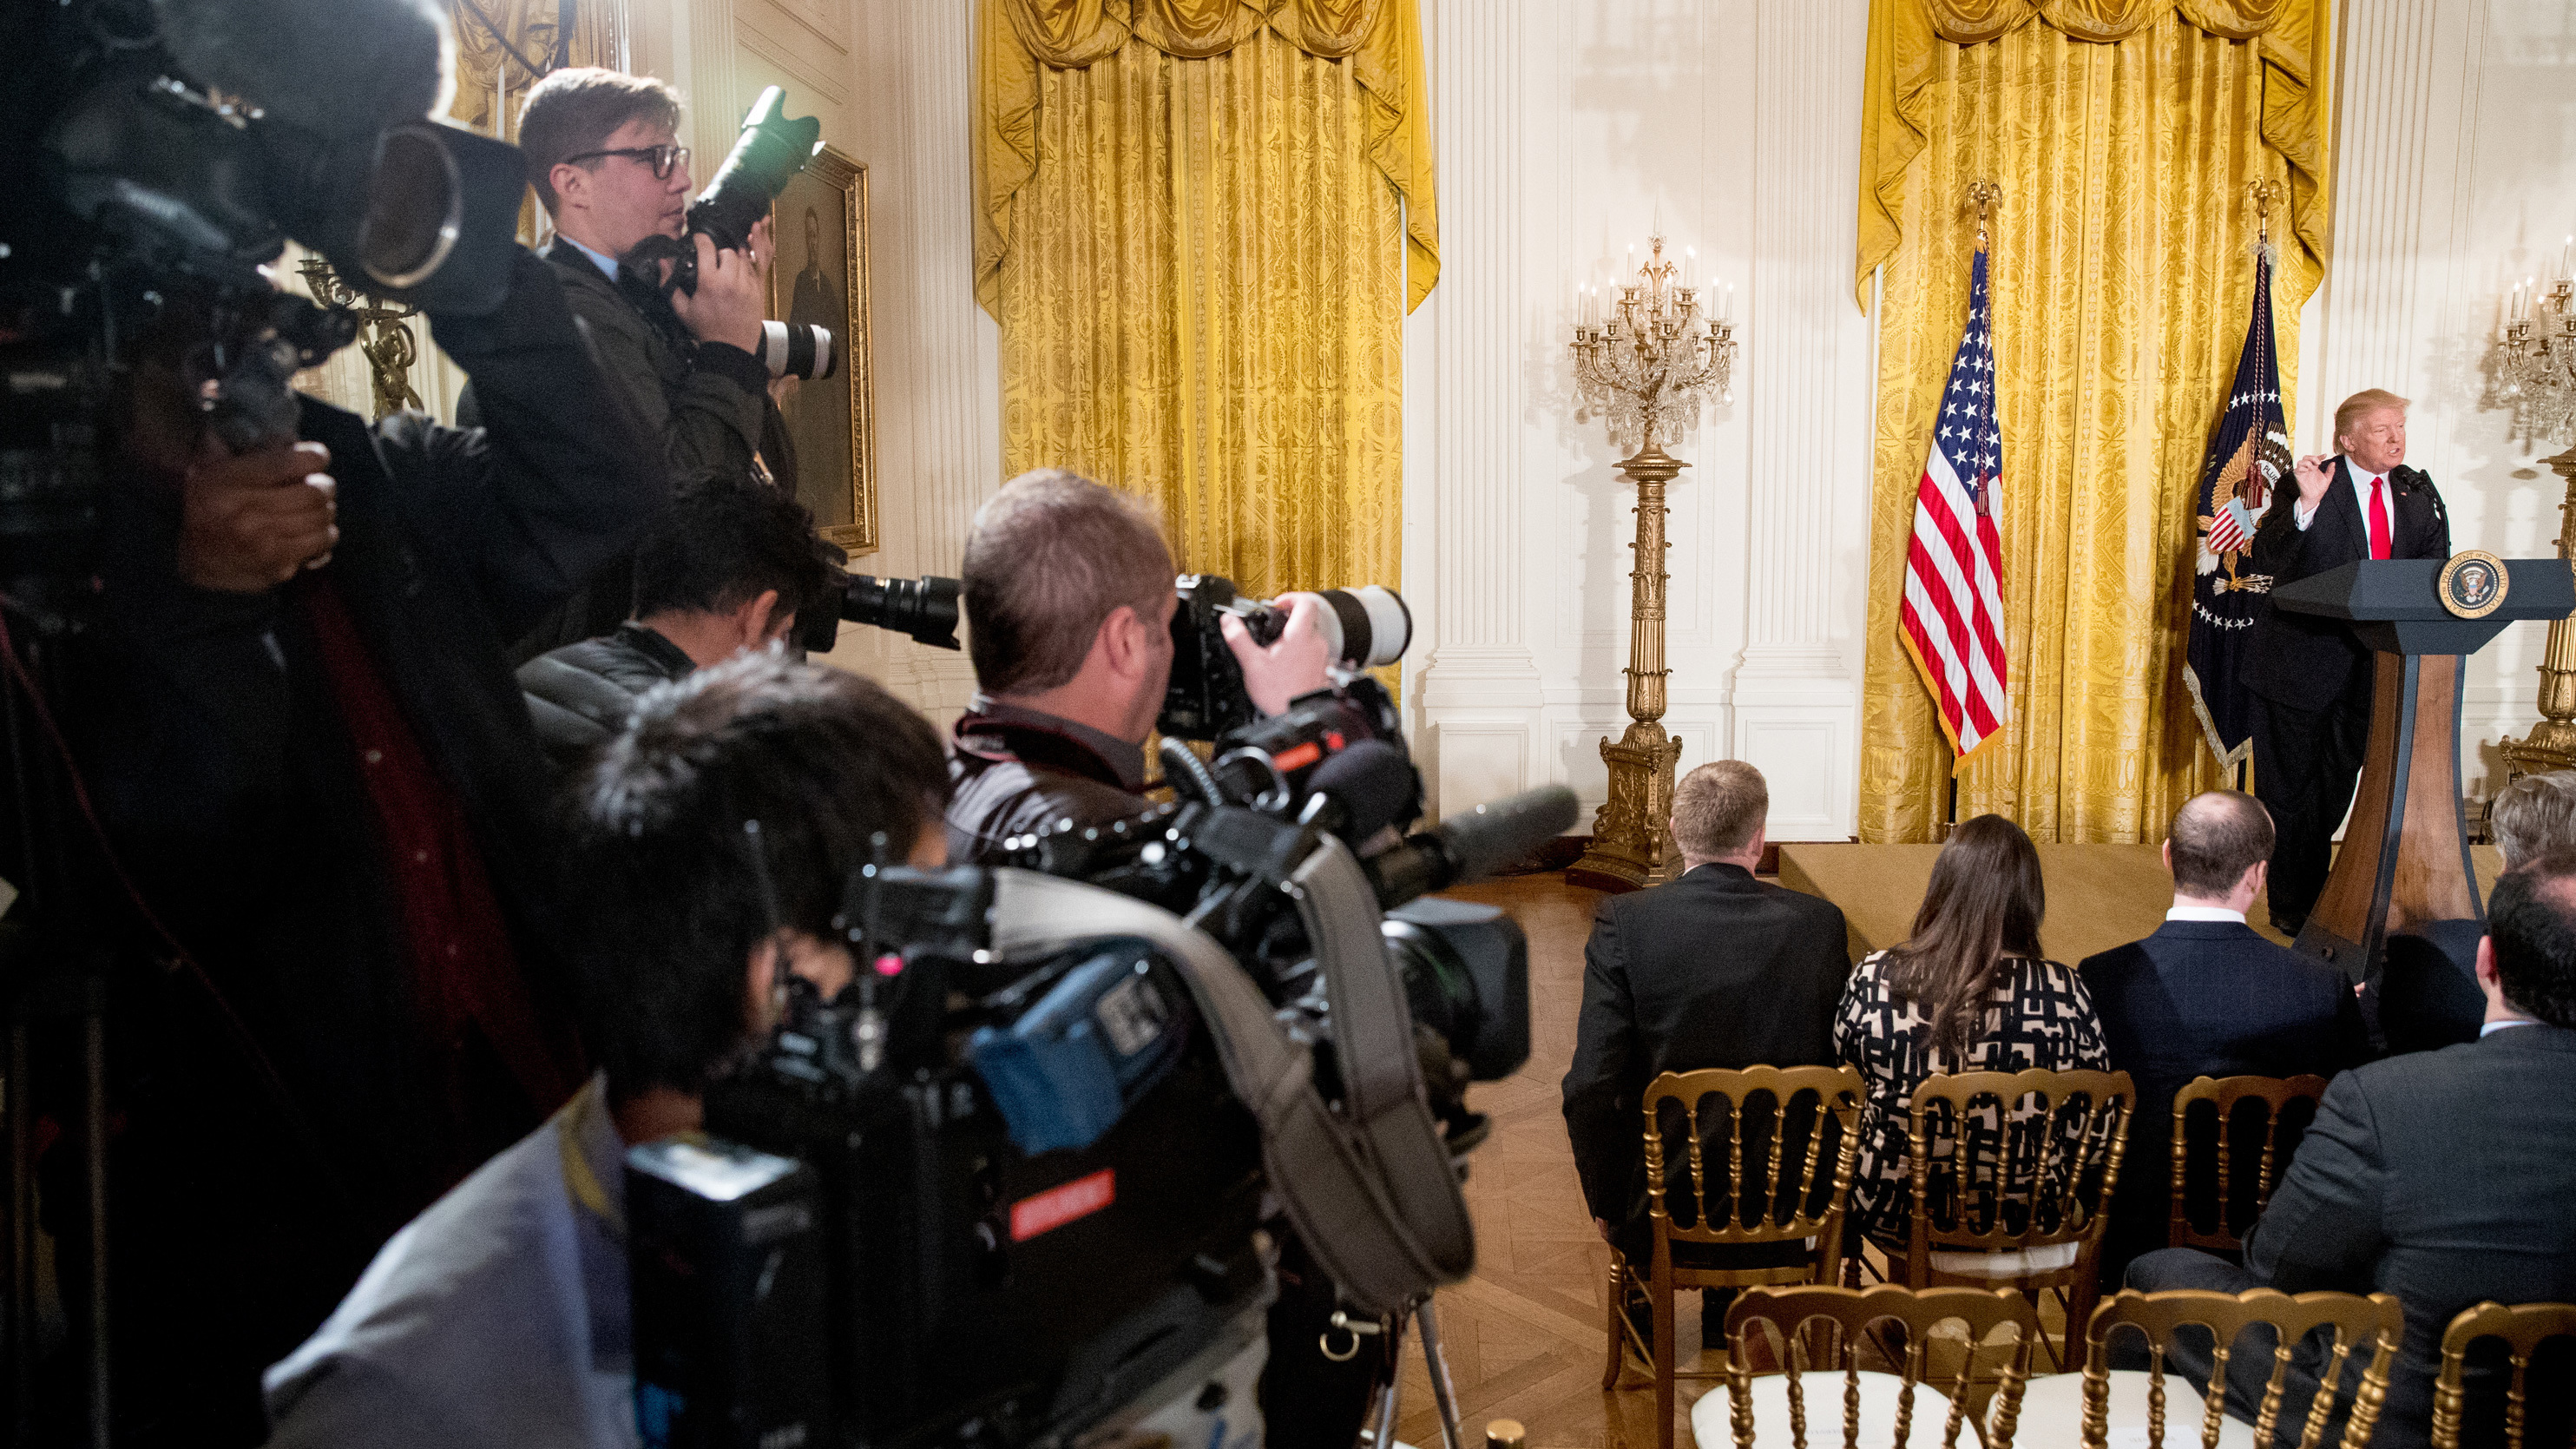 NPR's Full Court Press On Presidential Press Conferences